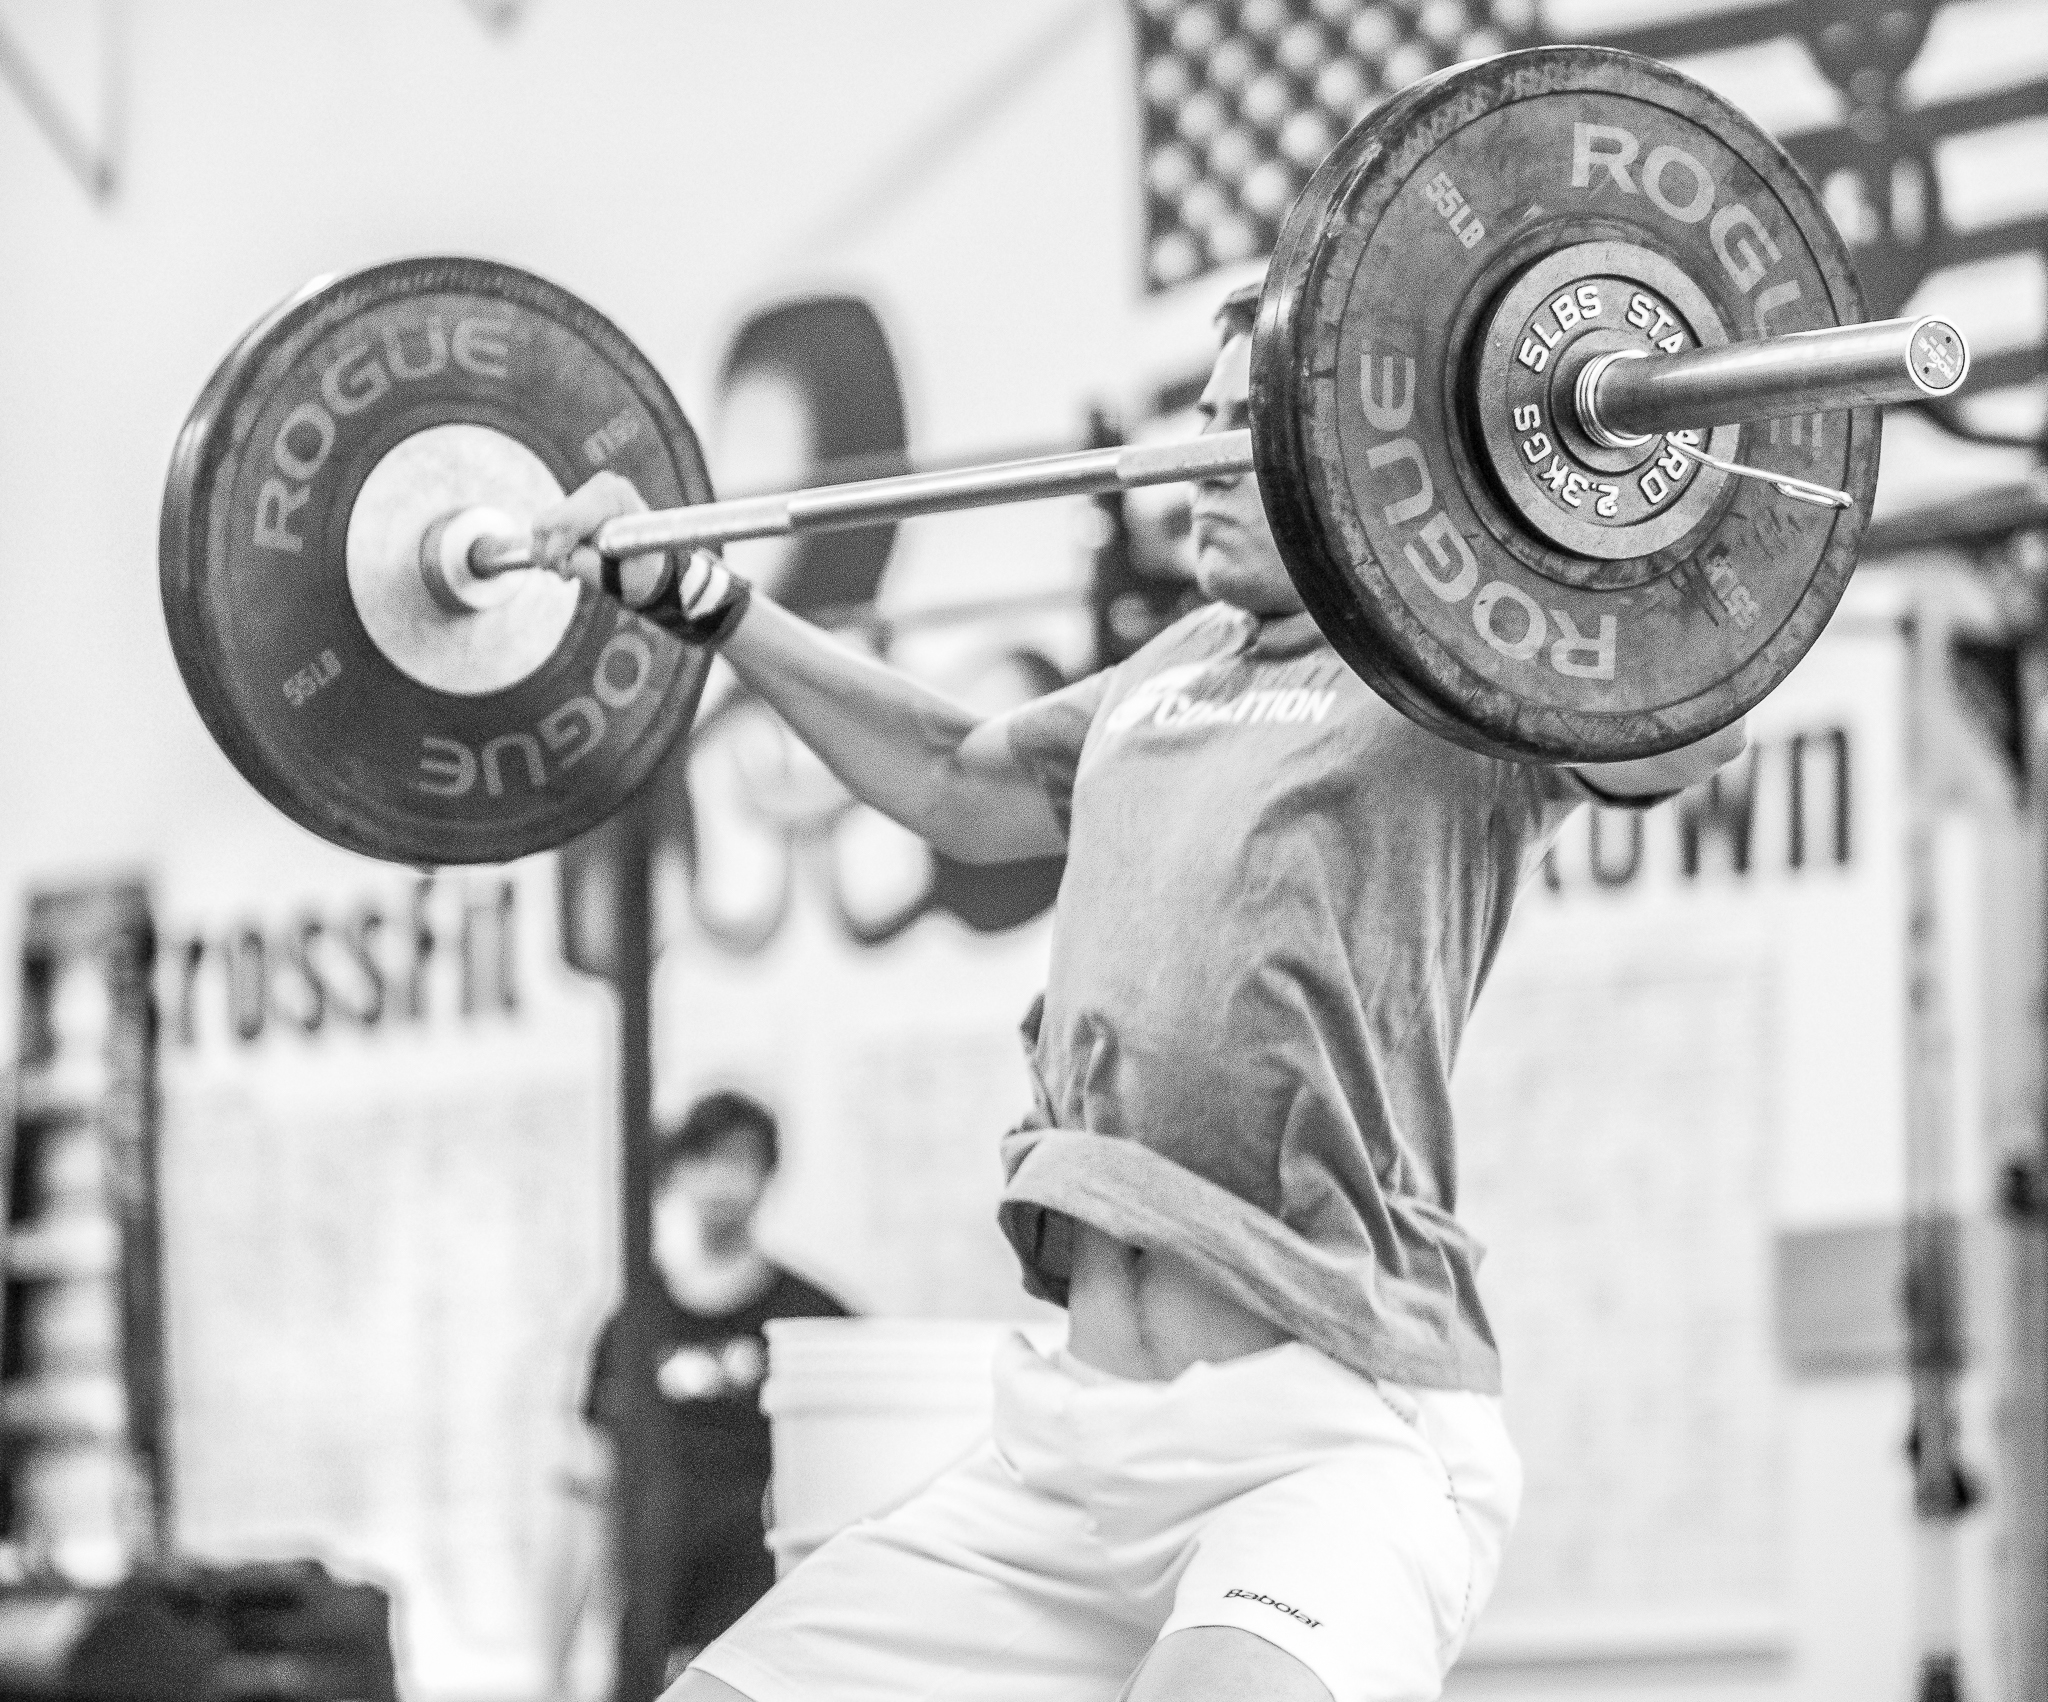 lift-for-purpose-weightlifting-meet-crossfit-strongtown-everyday-lifters (24 of 40).jpg